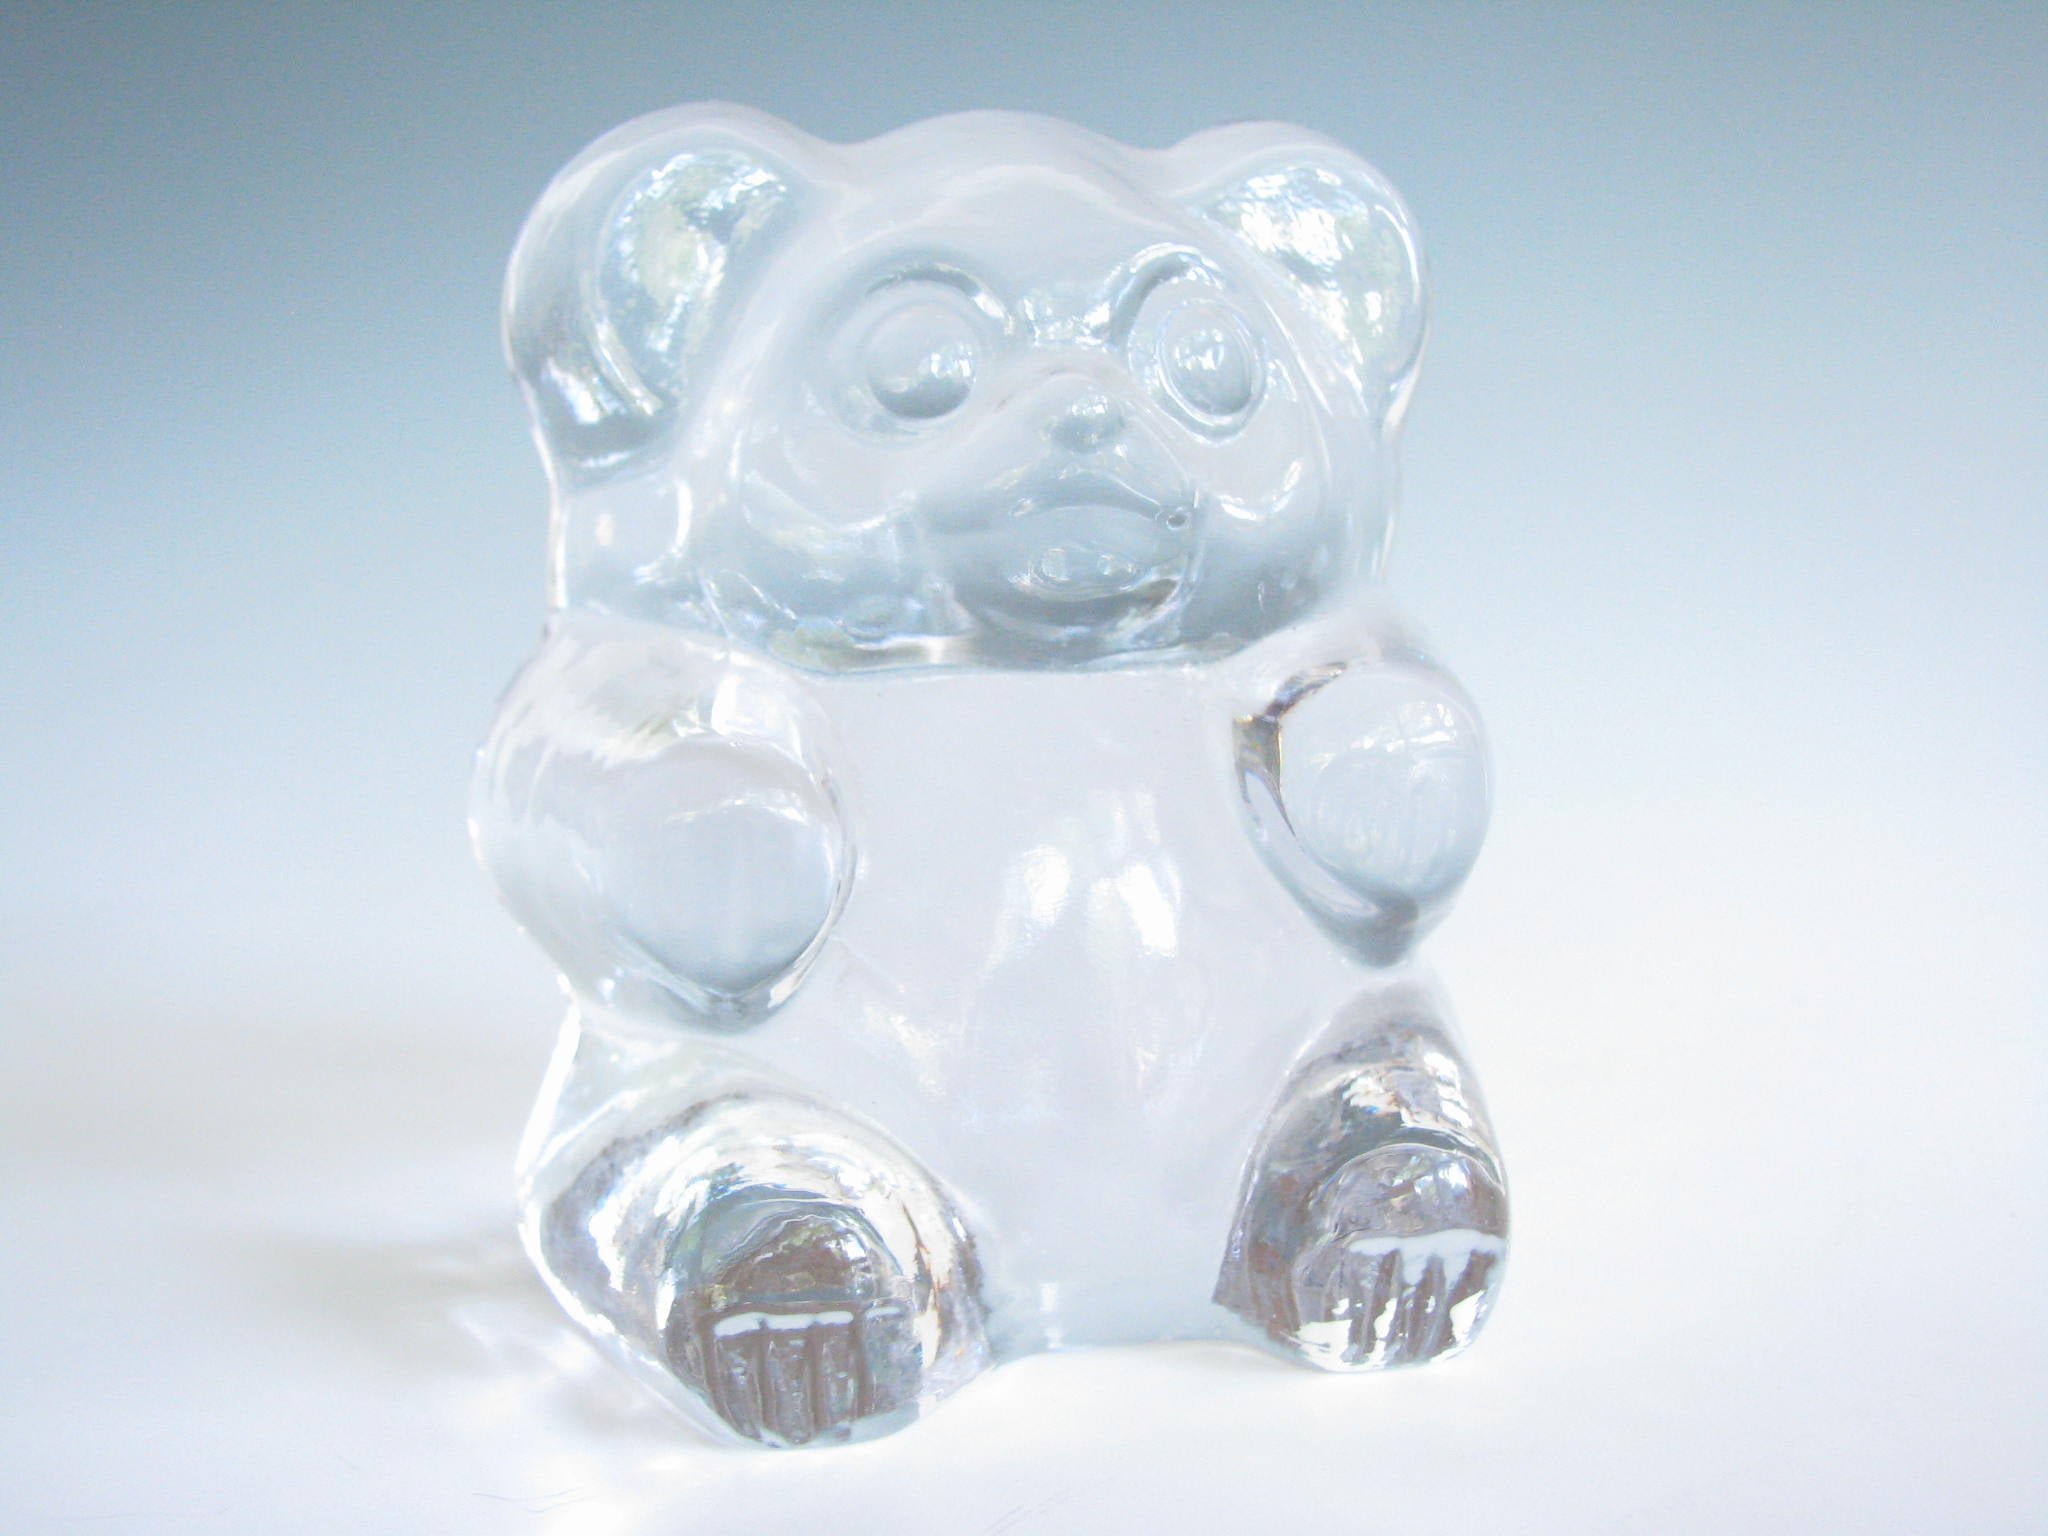 edgebrookhouse - Vintage Gummy Bear Art Glass Figurine Imperial by Lenox